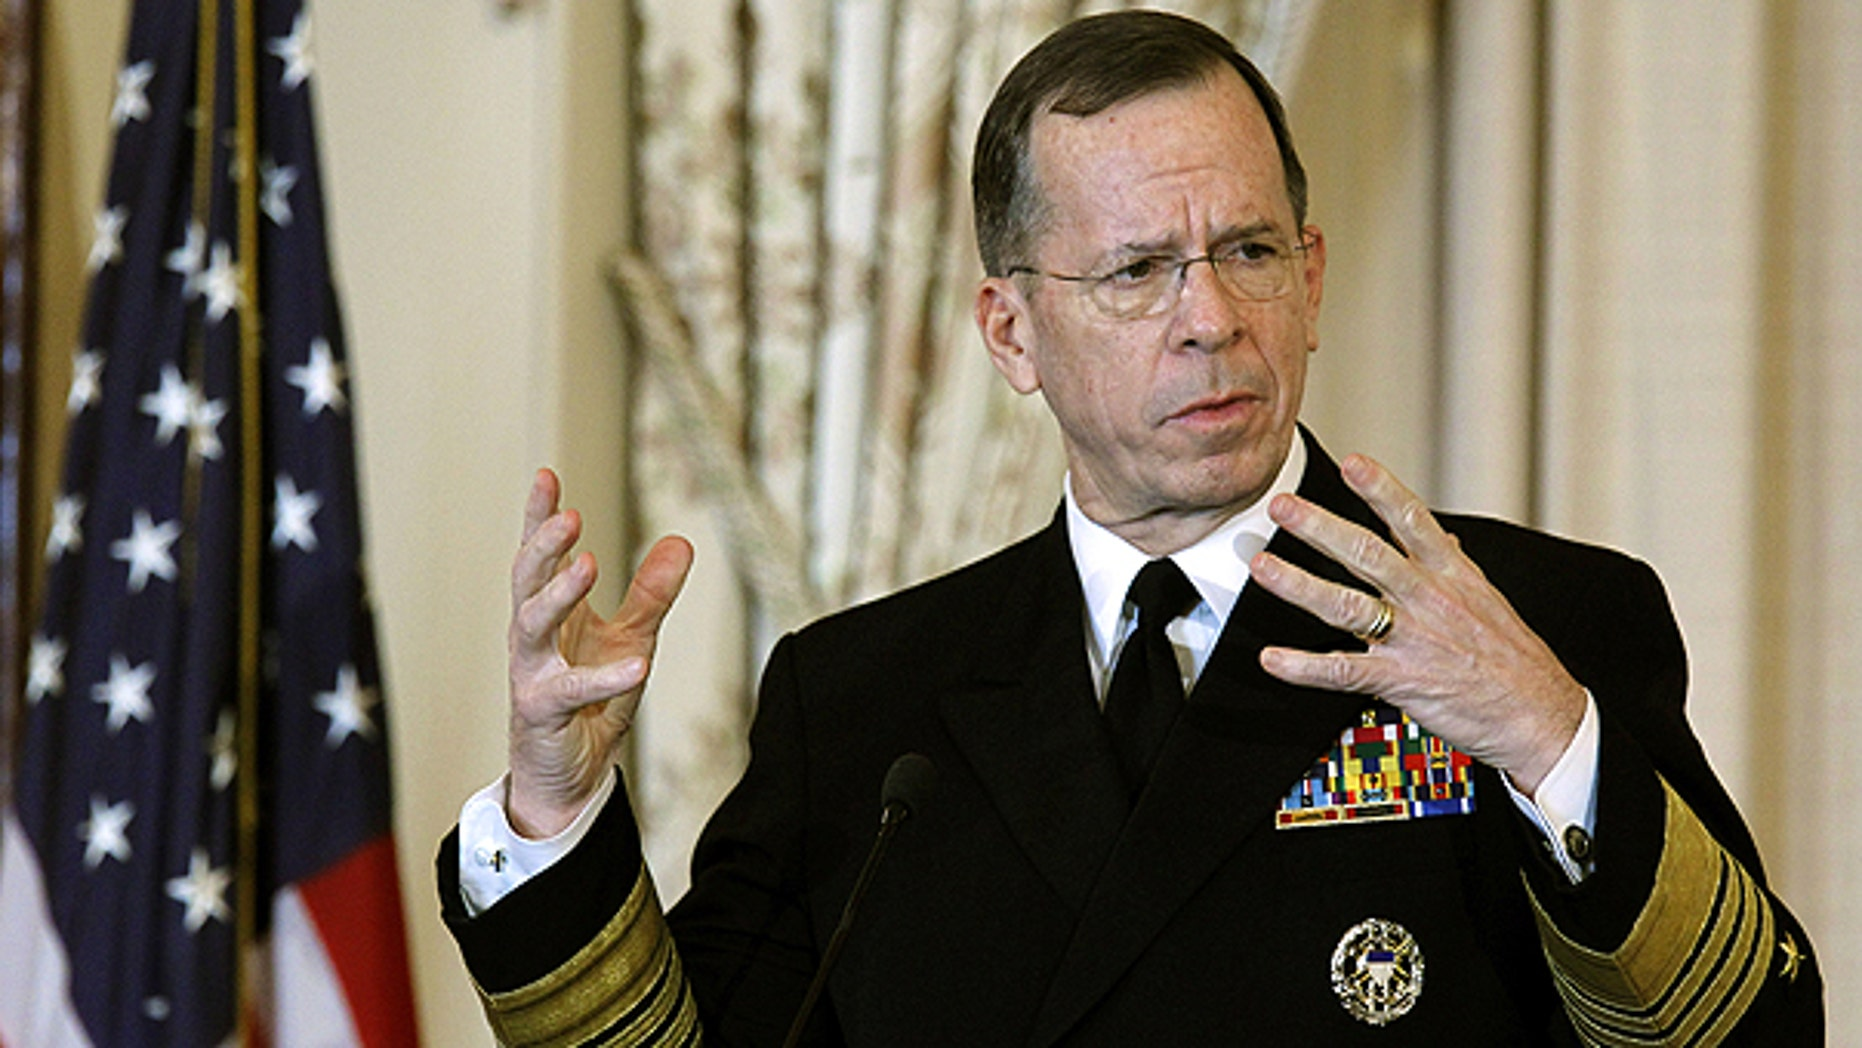 Feb. 2: Joint Chiefs Chairman Adm. Mike Mullen speaks during a luncheon of the Global Chiefs of Mission Conference, where all U.S. ambassadors from around the ground gather simultaneously at the State Department in Washington.